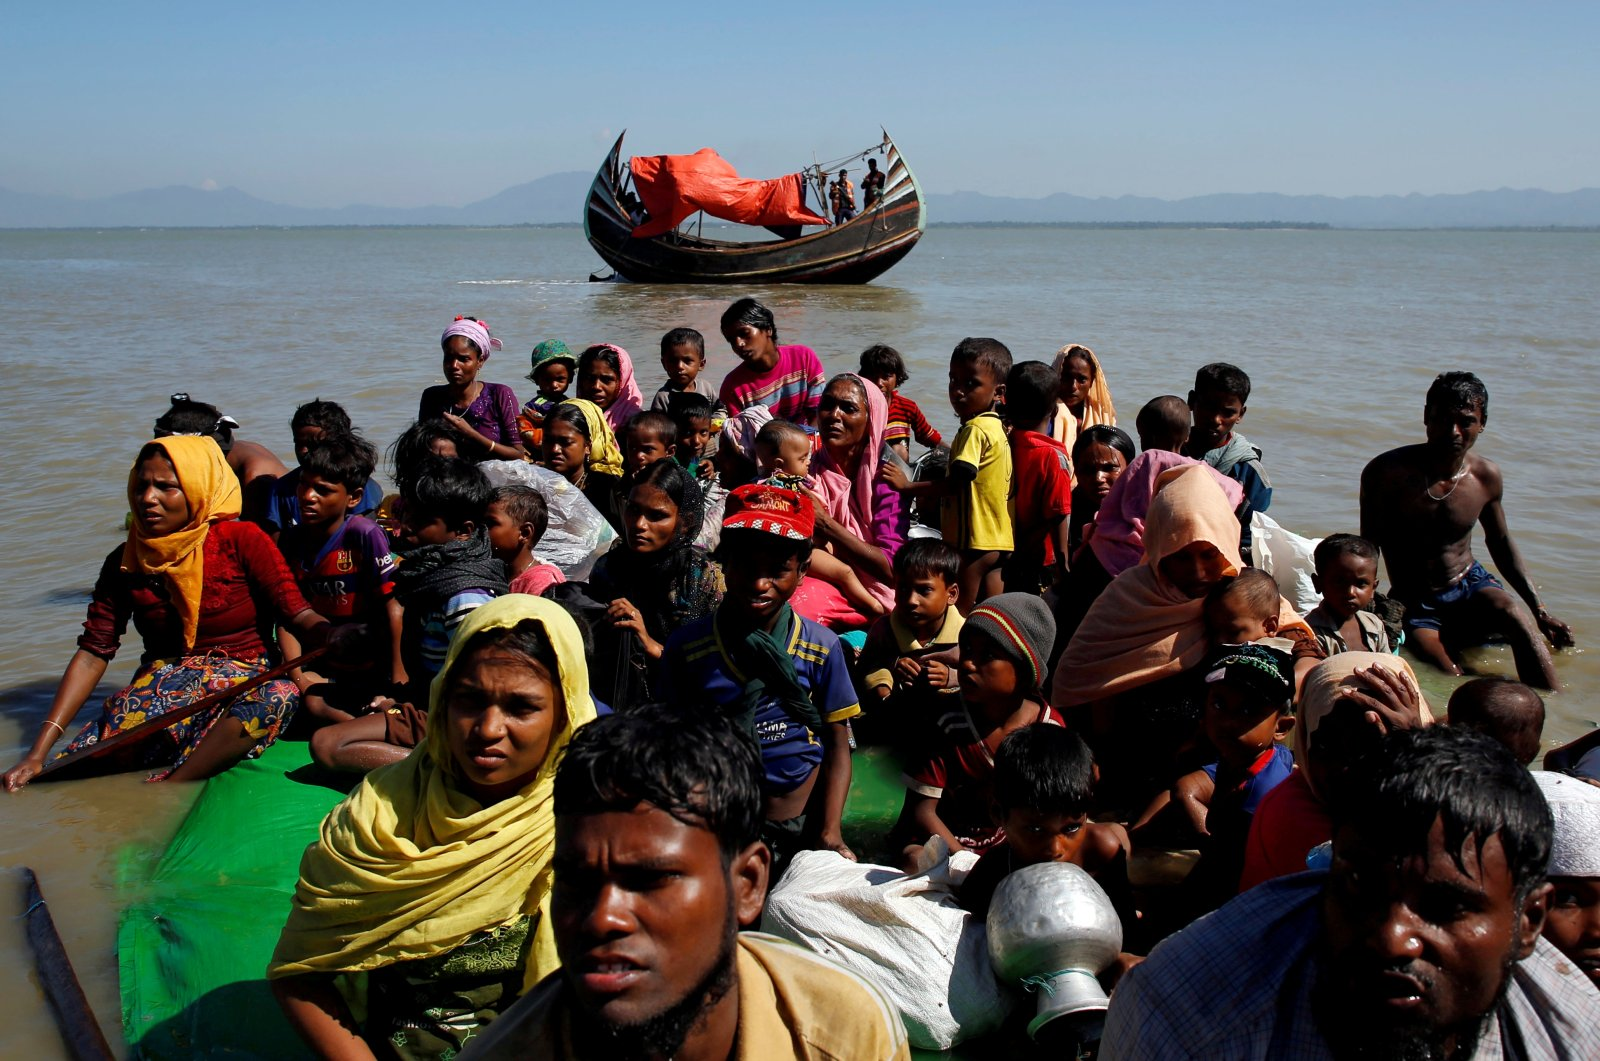 Rohingya refugees sit on a makeshift boat as they get interrogated by the Bangladeshi Border Guard after crossing the Bangladesh-Myanmar border, at Shah Porir Dwip near Cox's Bazar, Bangladesh, Nov. 9, 2017. (Reuters File Photo)